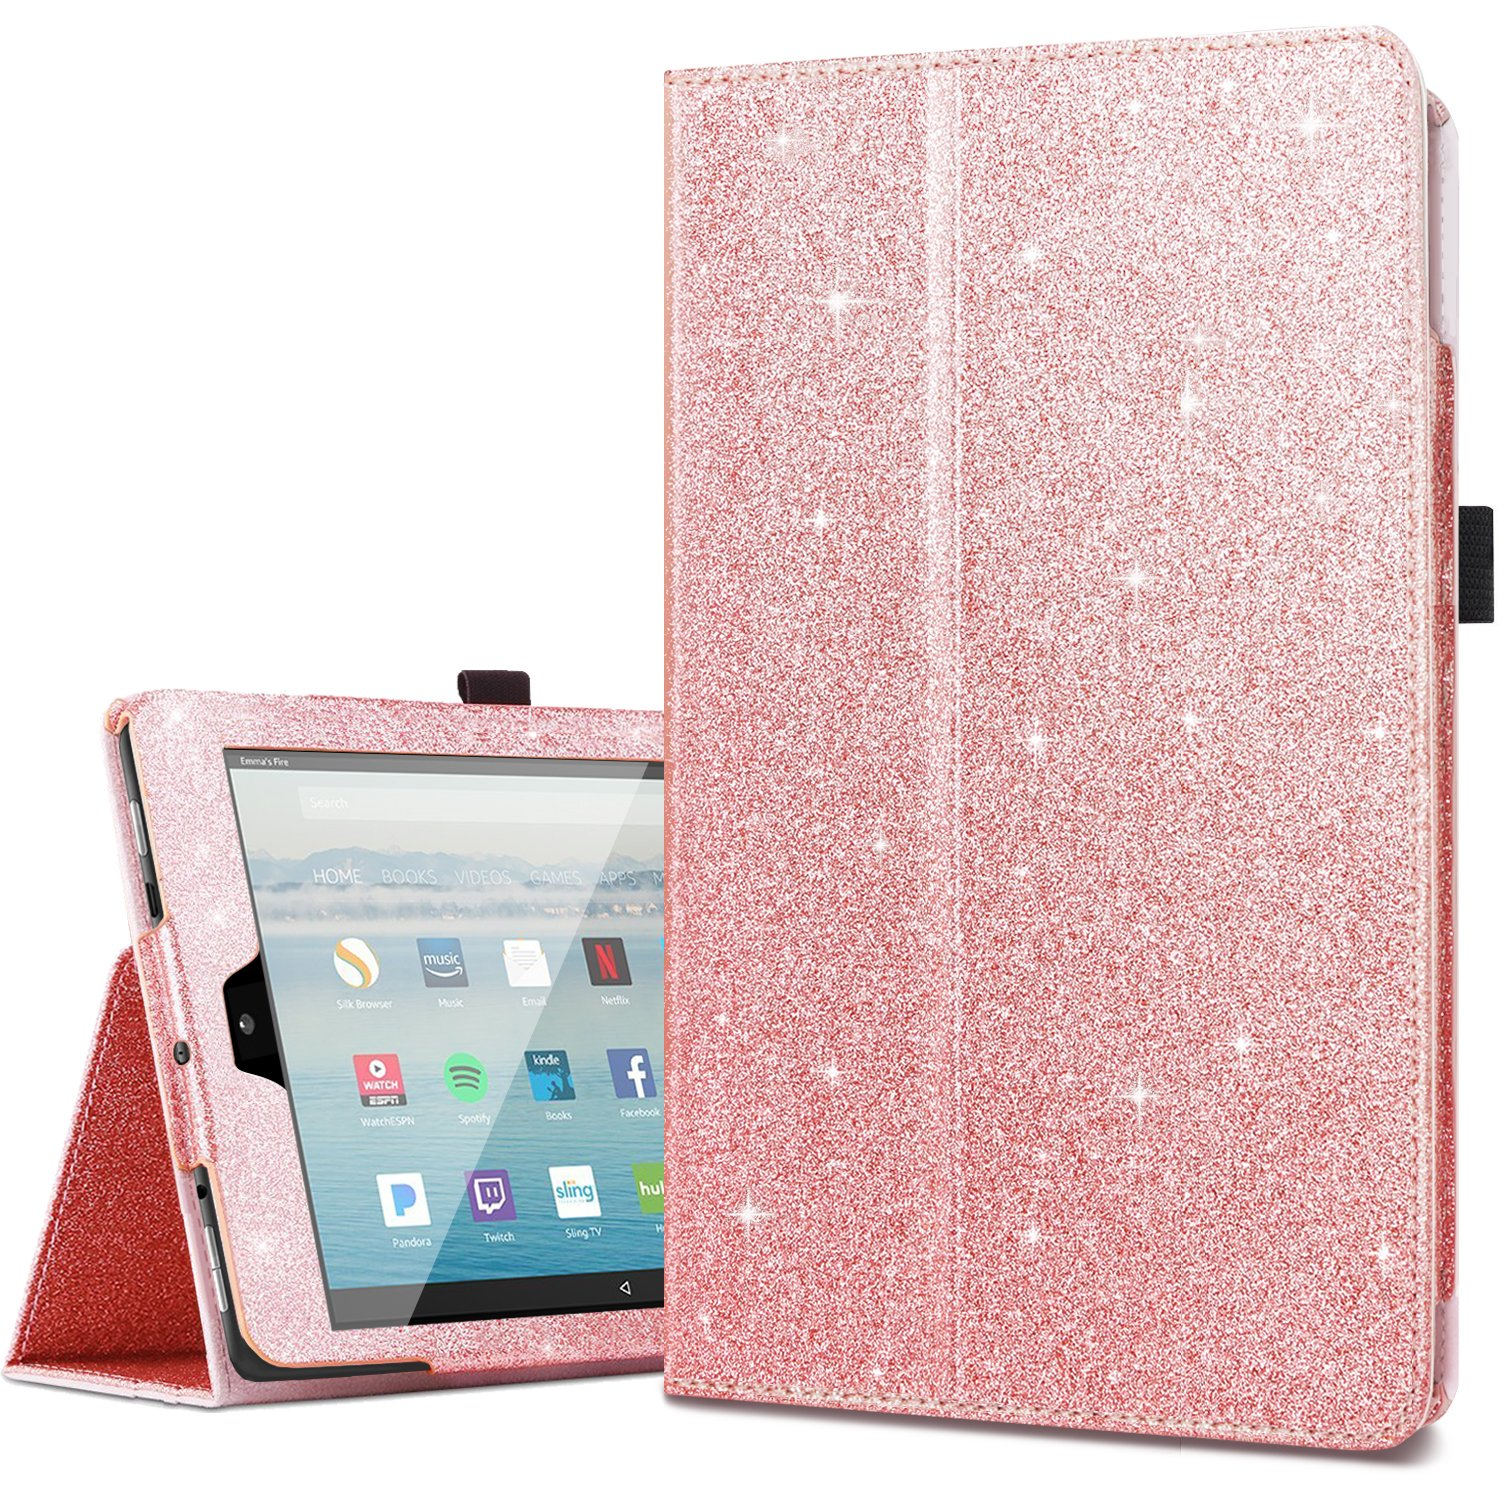 sports shoes e3cc0 27021 Amazon Fire HD 10 Case 2017,Kindle Fire HD10 2017 Cases,Fingic Luxury  Sparkly Folio Folding Stand Cover with Holder & Auto Wake/Sleep Smart Case  for ...